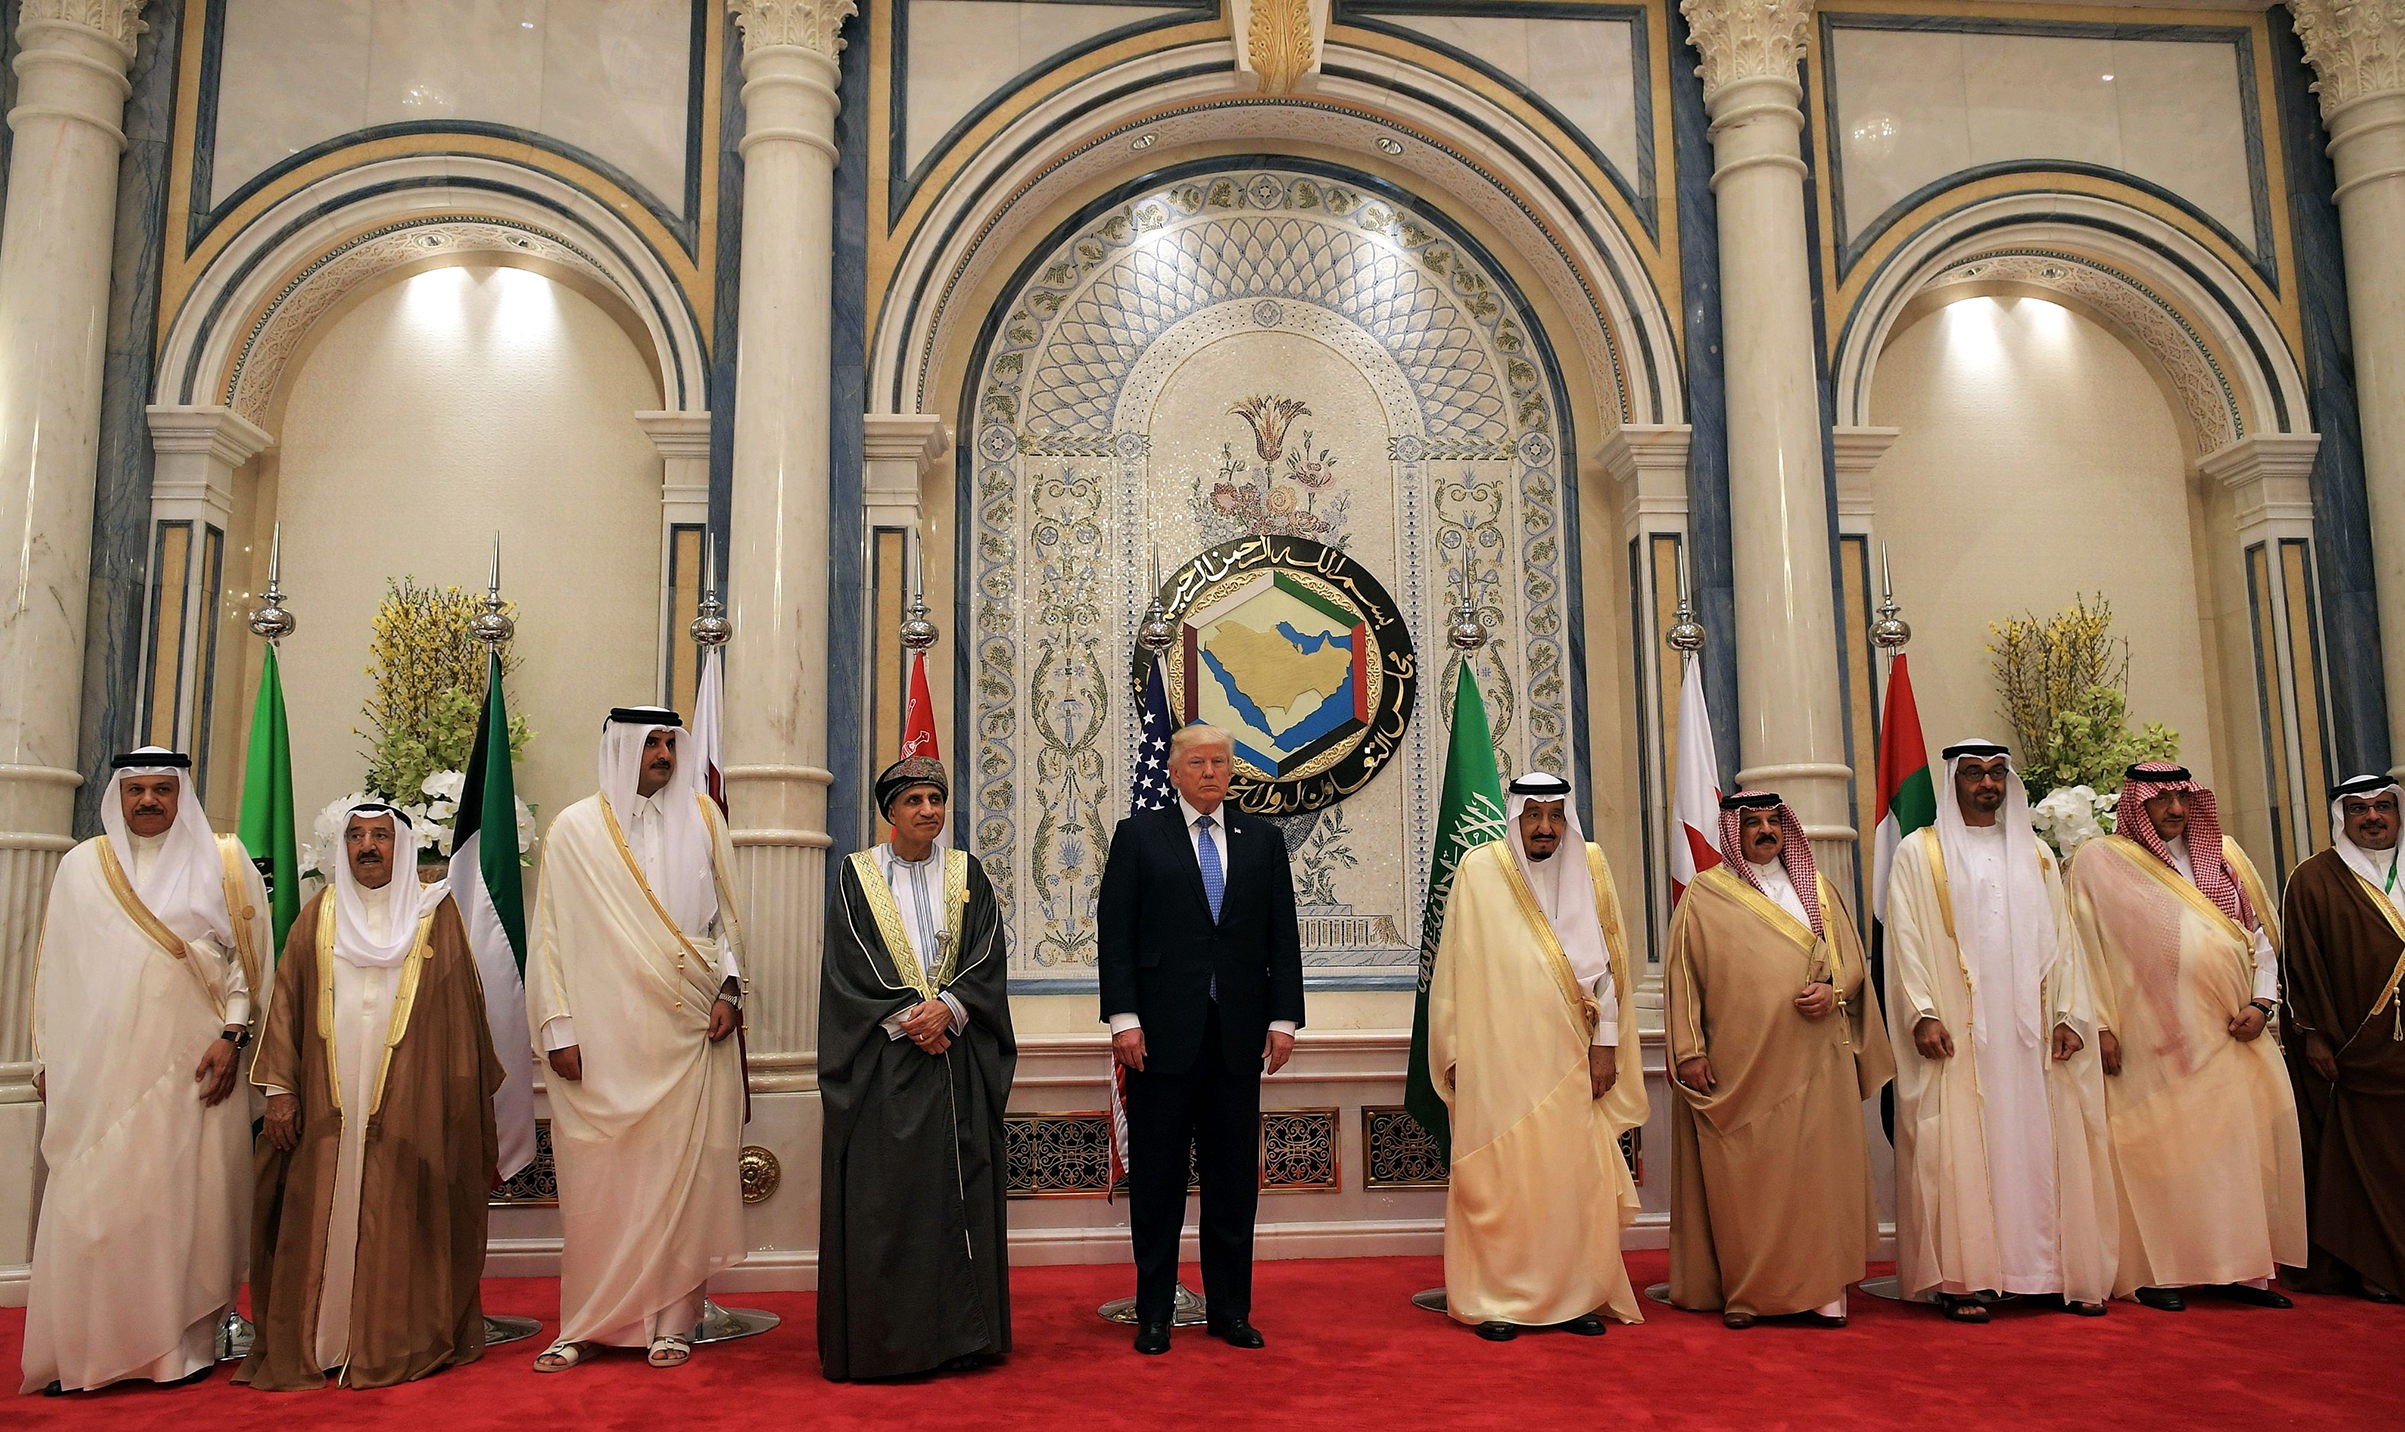 President Donald Trump and Saudi's King Salman bin Abdulaziz al-Saud pose for a picture with leaders of the Gulf Cooperation Council in Riyadh on May 21, 2017.